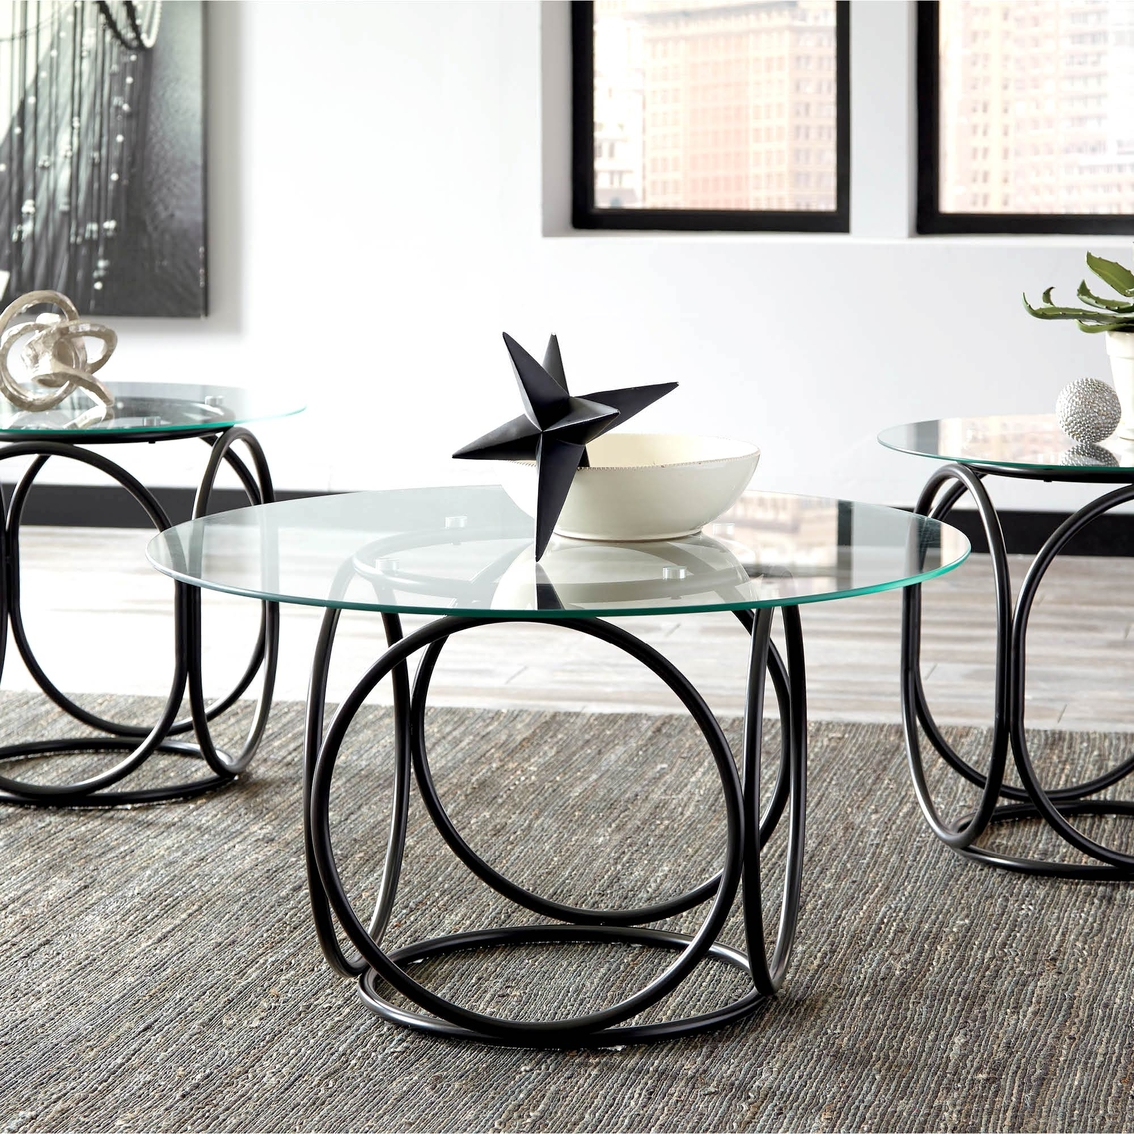 Signature Design By Ashley Quassey Table 3 Pc. Set | Living Room ...